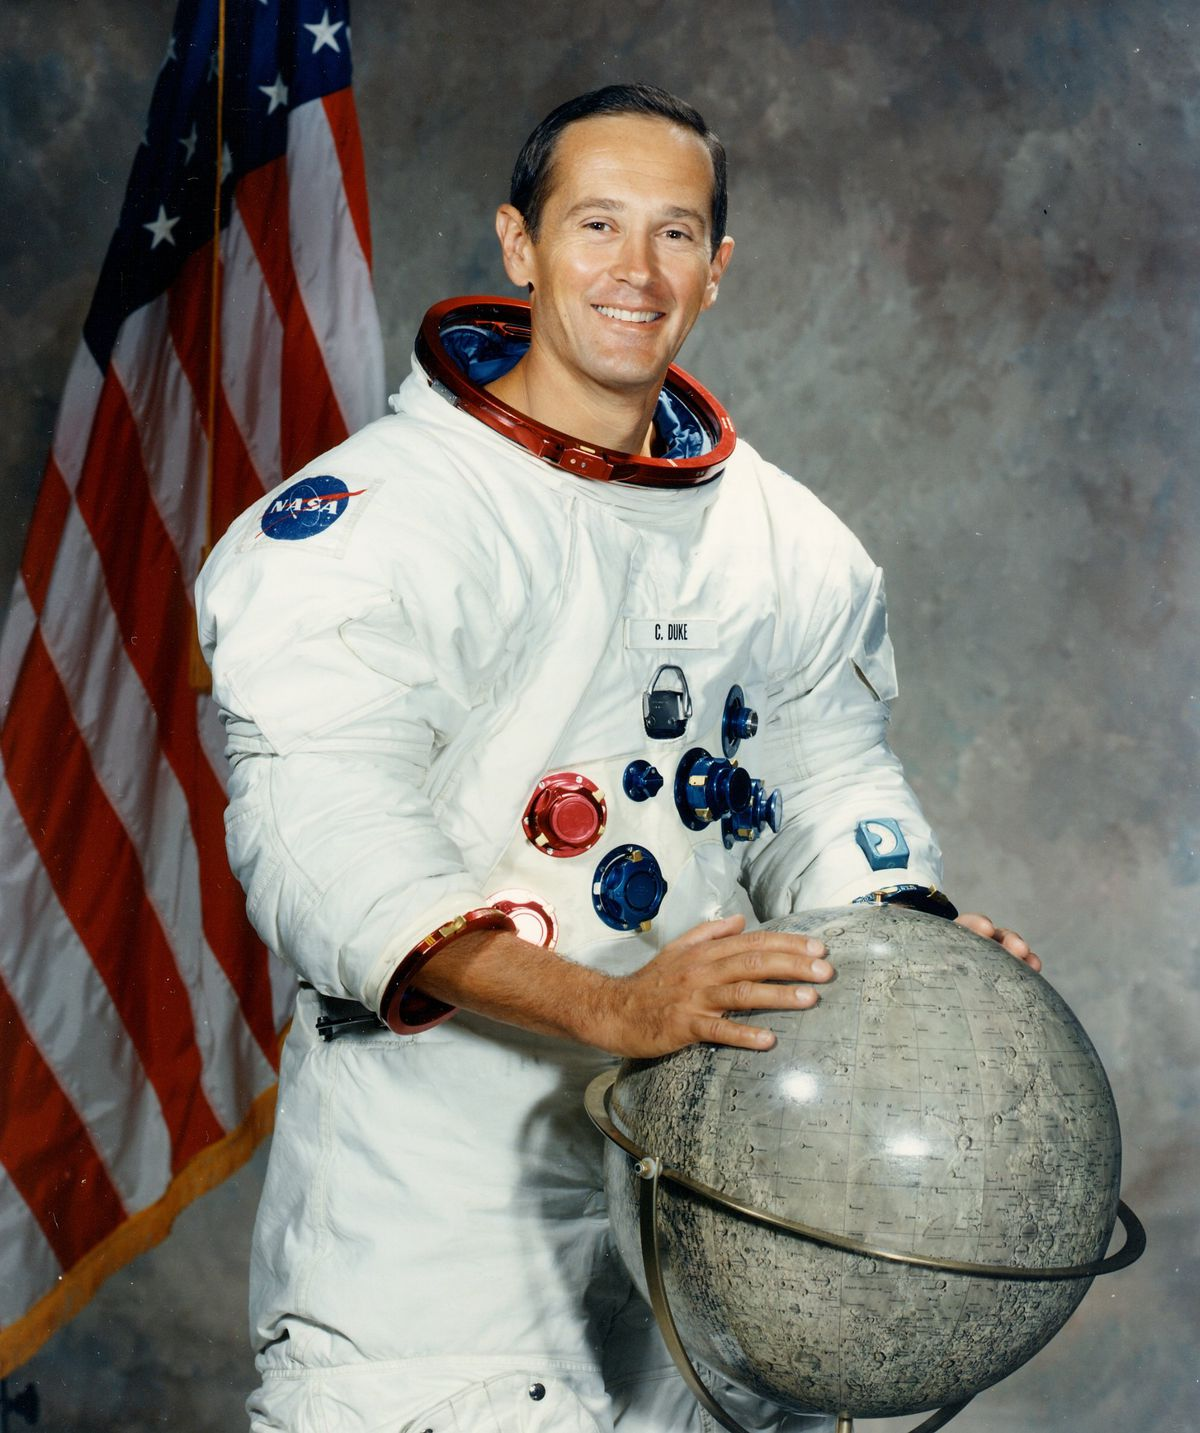 Apollo 16 astronaut Charlie Duke in 1972 became the youngest person to walk on the moon.